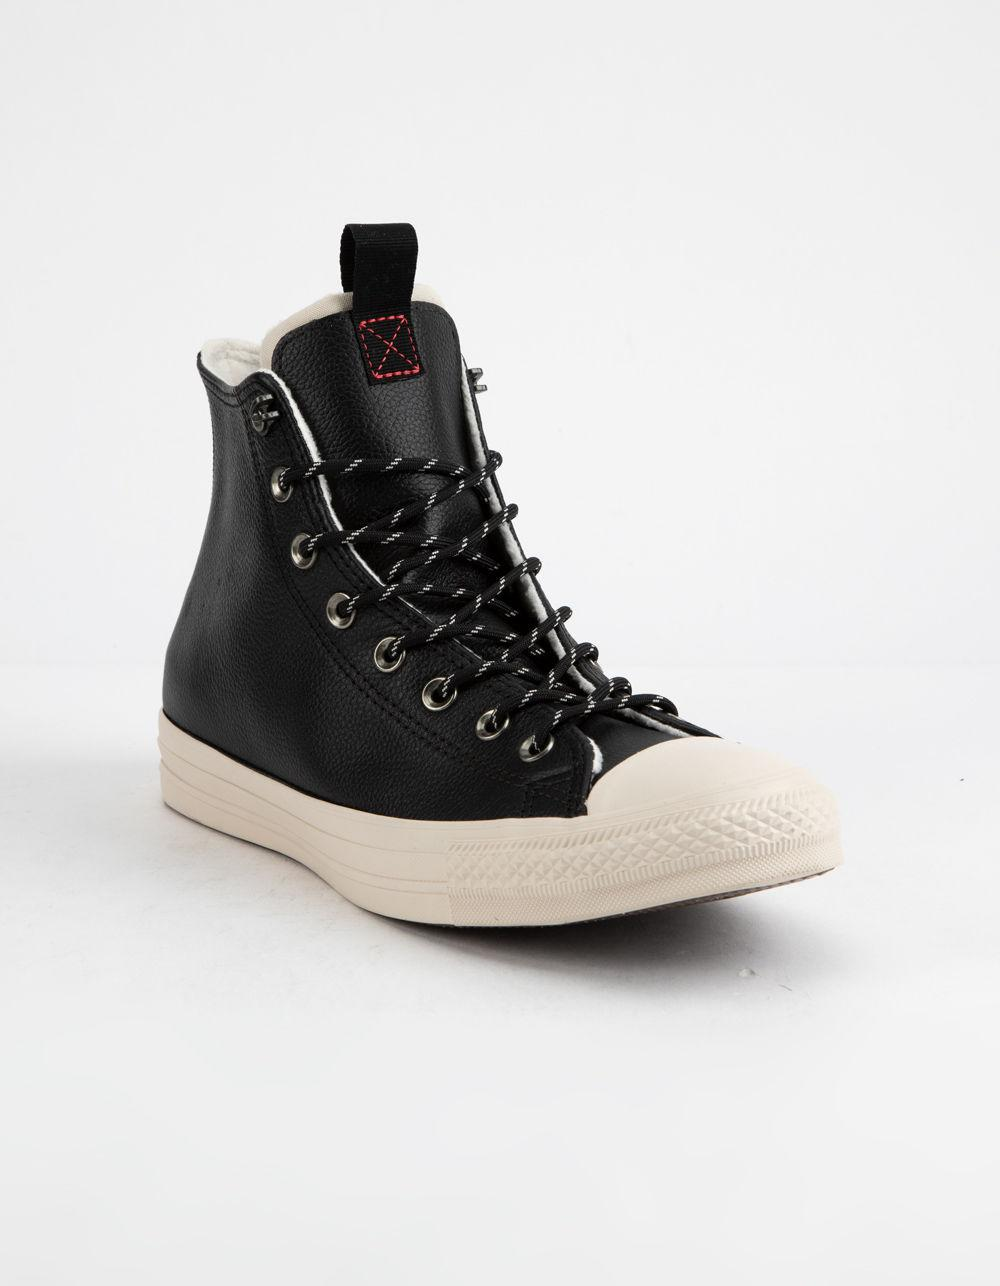 0aa04555c57a8 Converse Chuck Taylor All Star Leather Black   Driftwood High Top Shoes in  Black for Men - Lyst